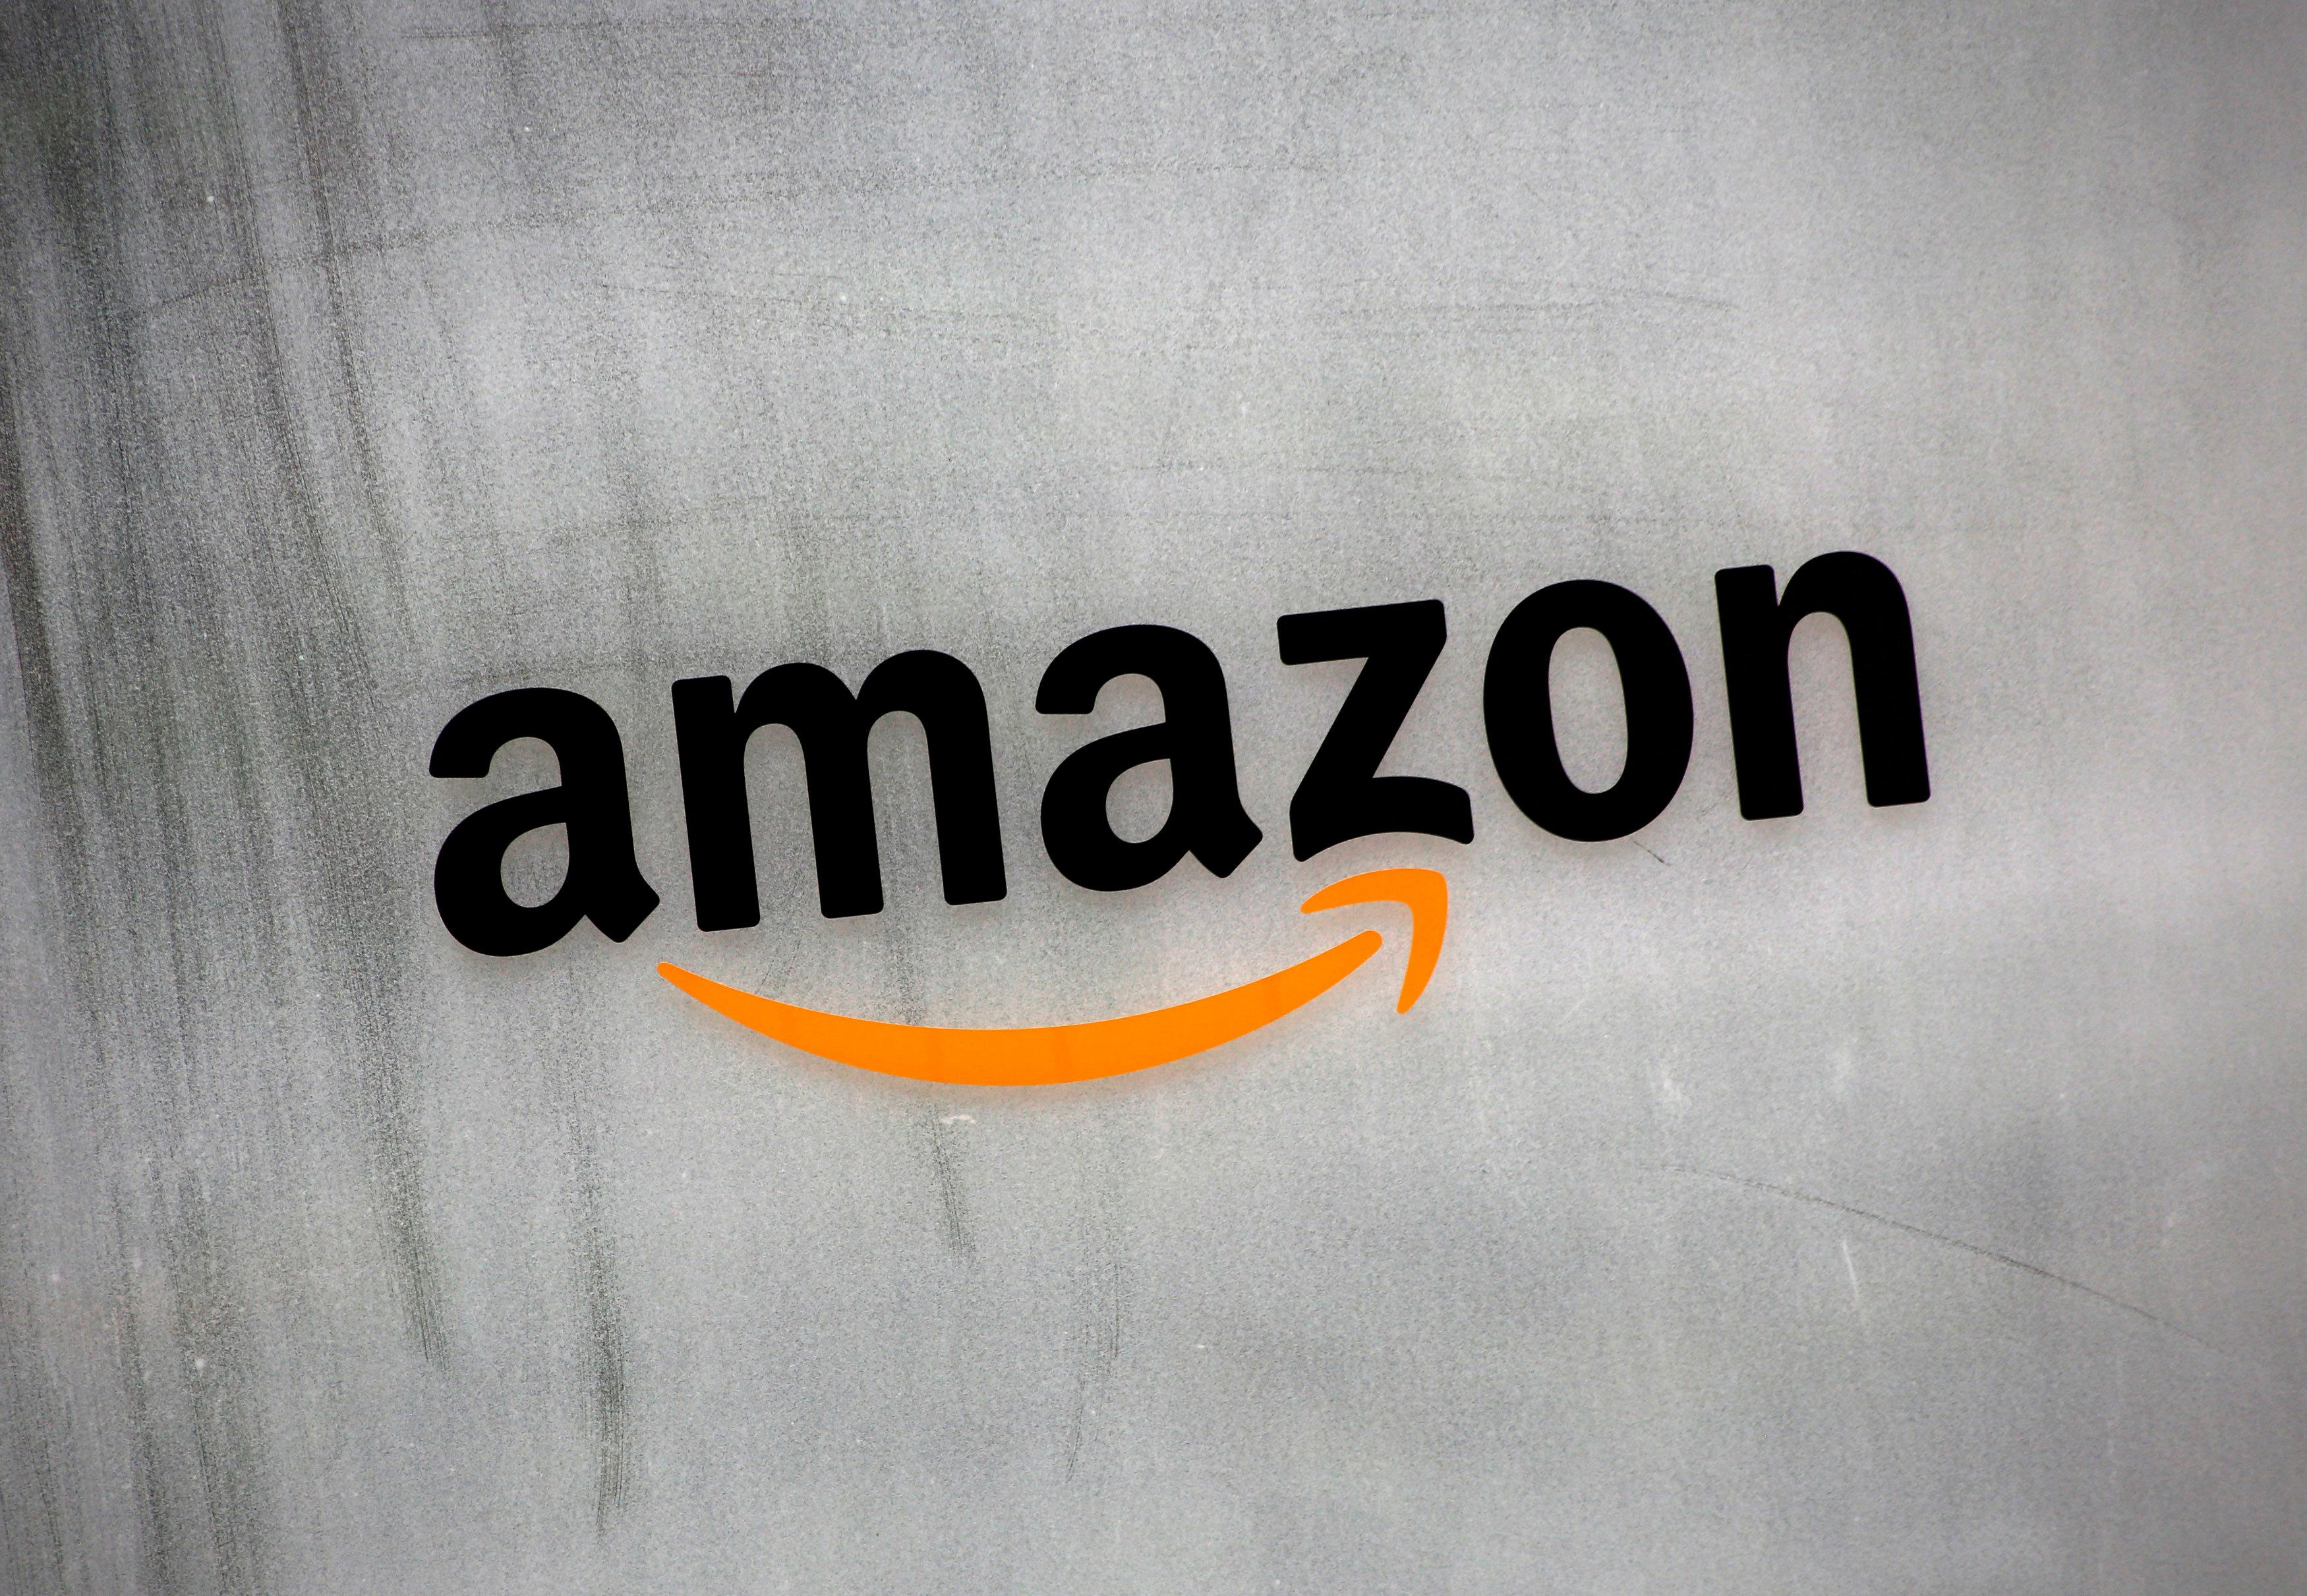 Amazon's face ID tool mismatched 28 members of Congress to mug shots - ACLU